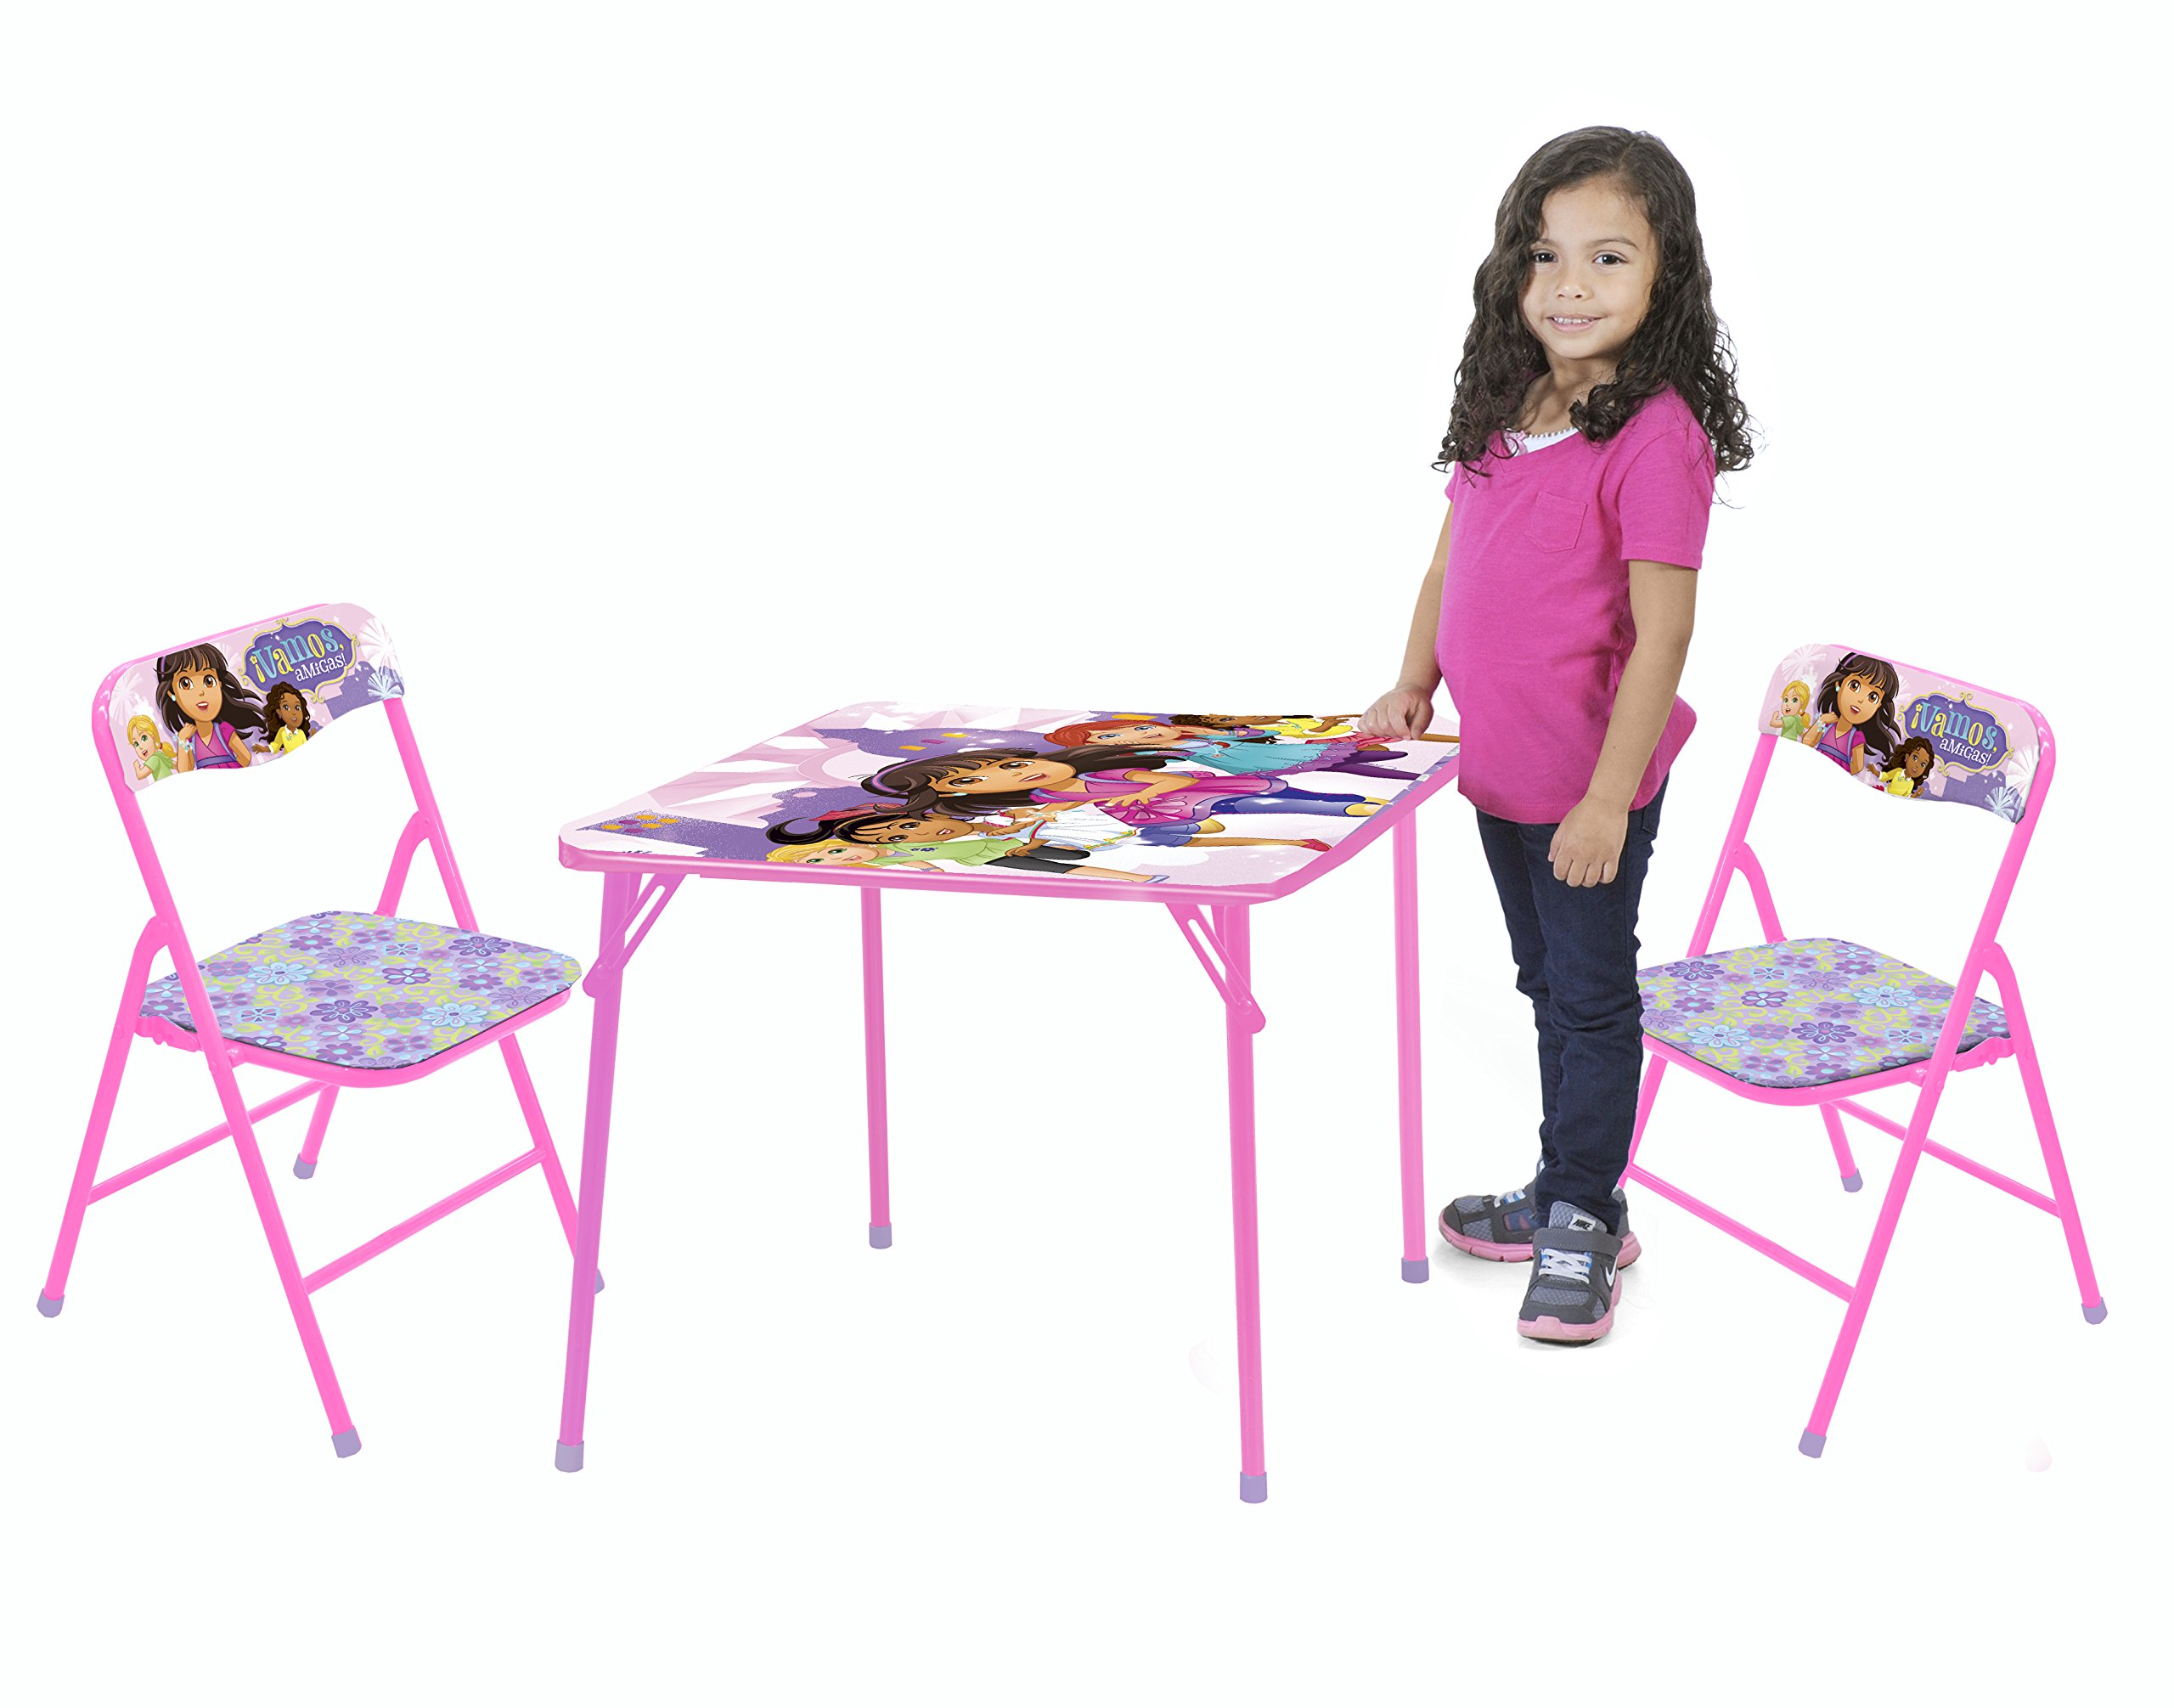 Nickelodeon Dora and Friends Table and Chair Set (3-Piece) by Nickelodeon